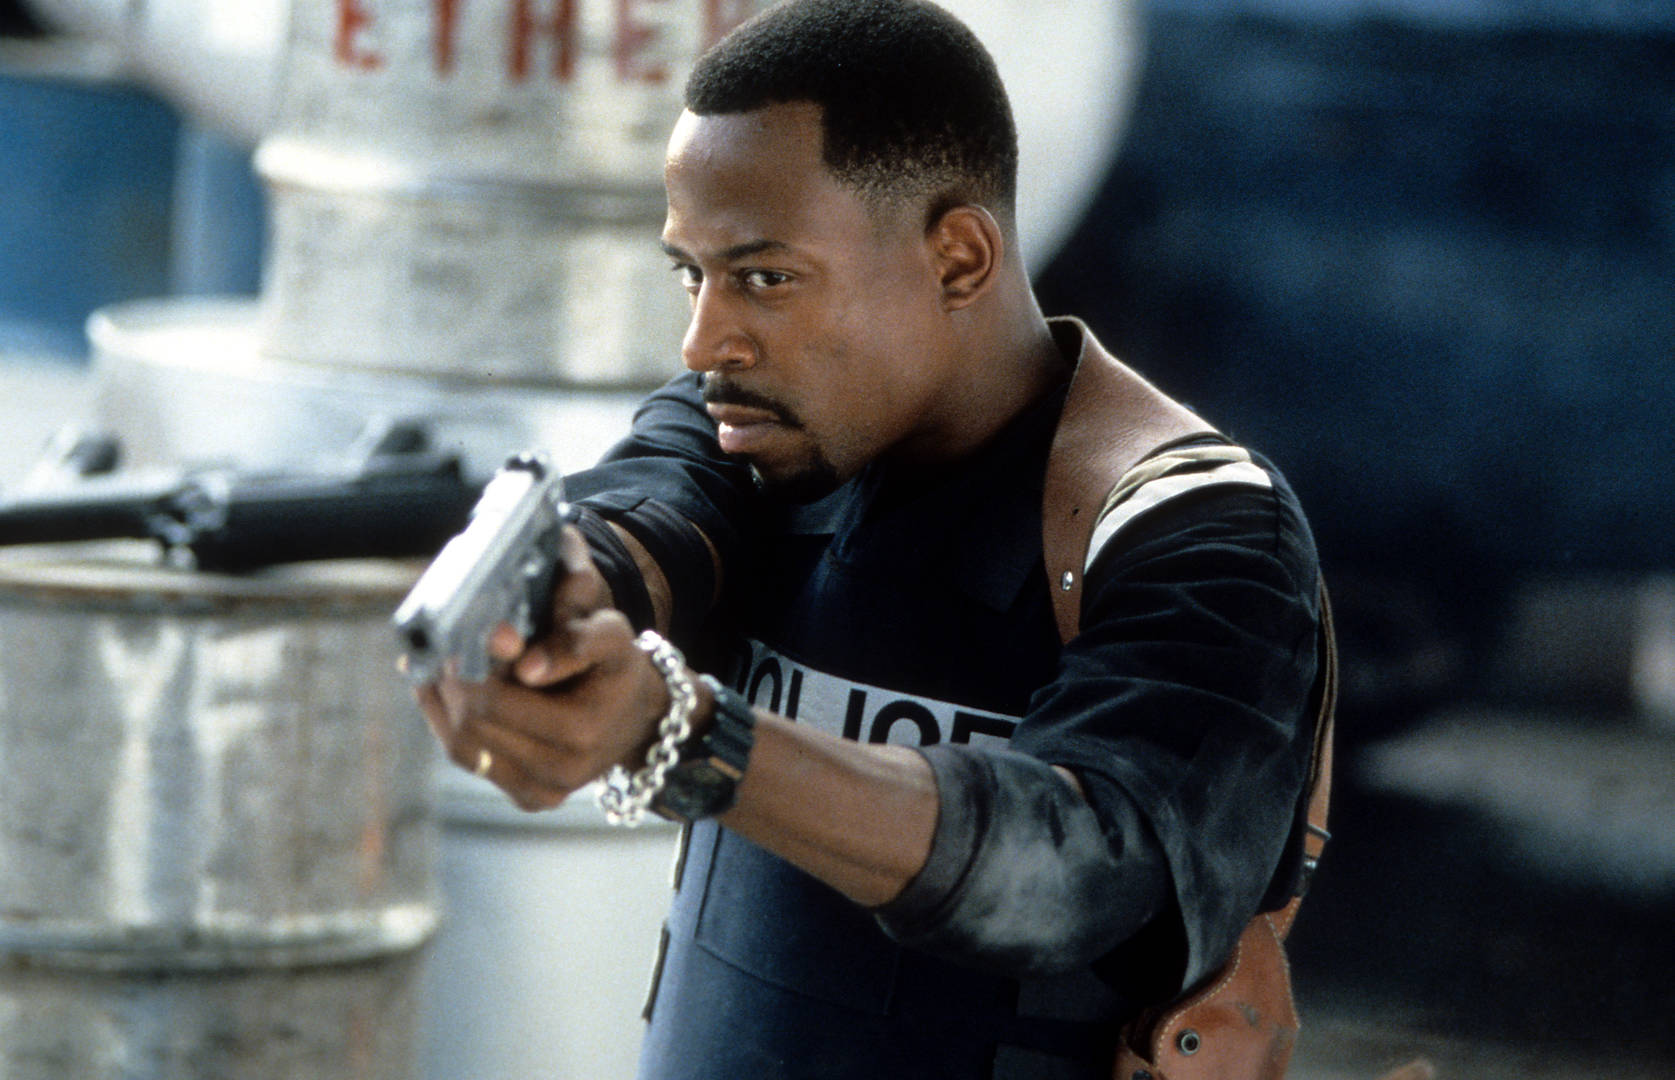 Bad Boys Film 25th Anniversary Capsule Collection will smith martin Lawrence